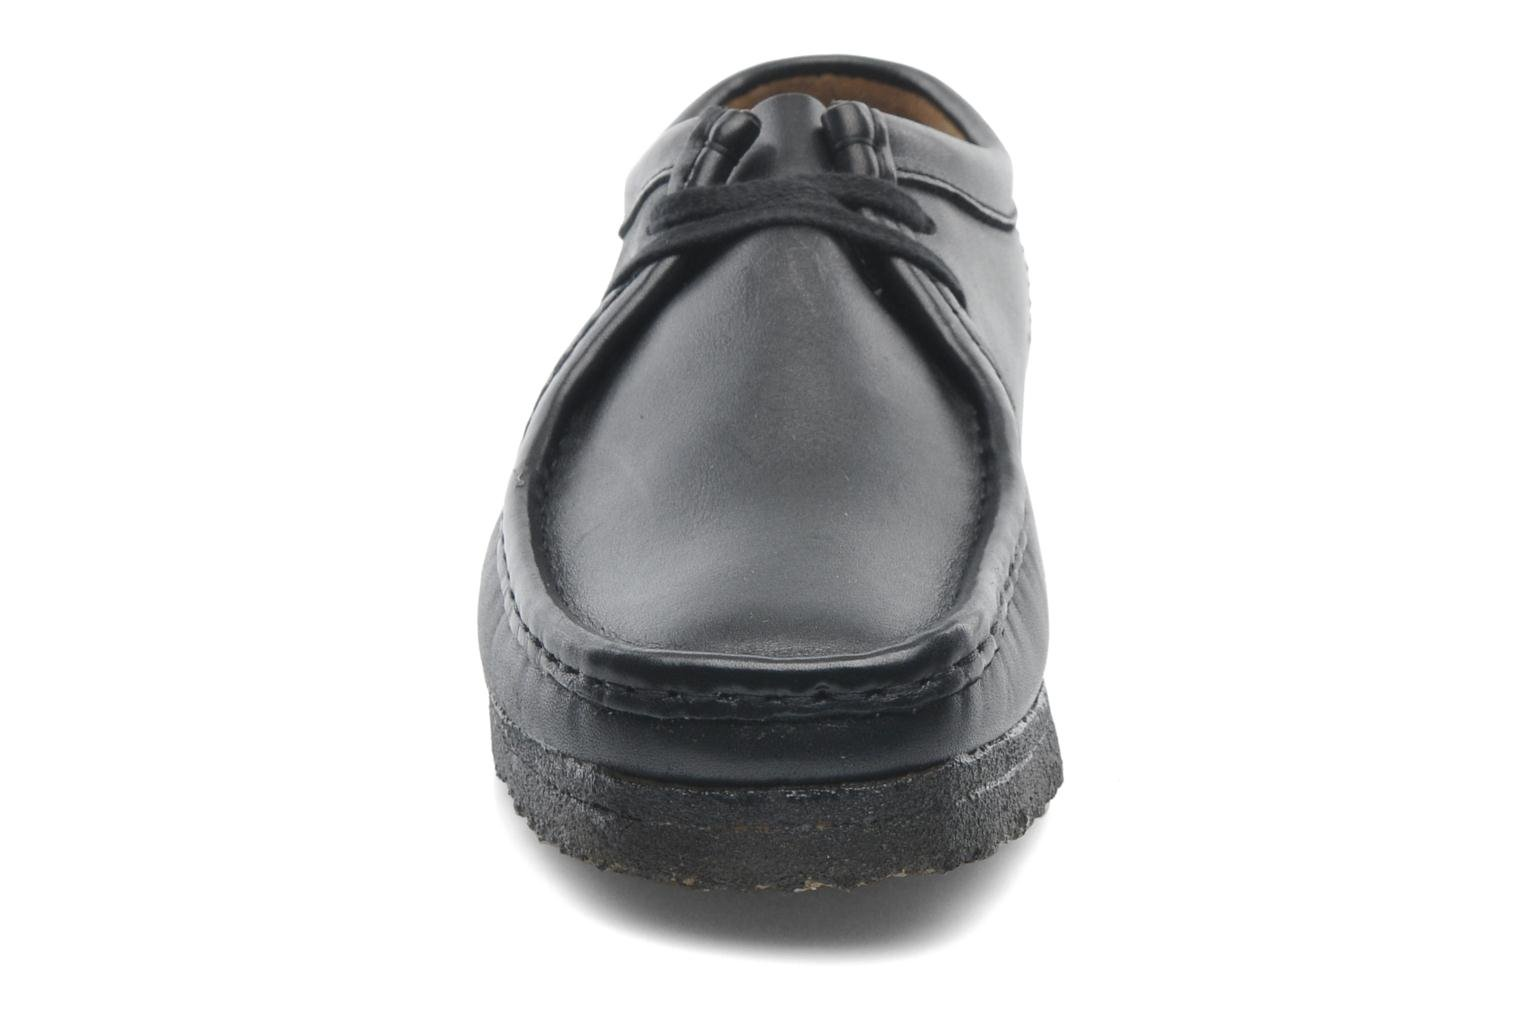 Lace-up shoes Clarks Originals Wallabee M Black model view